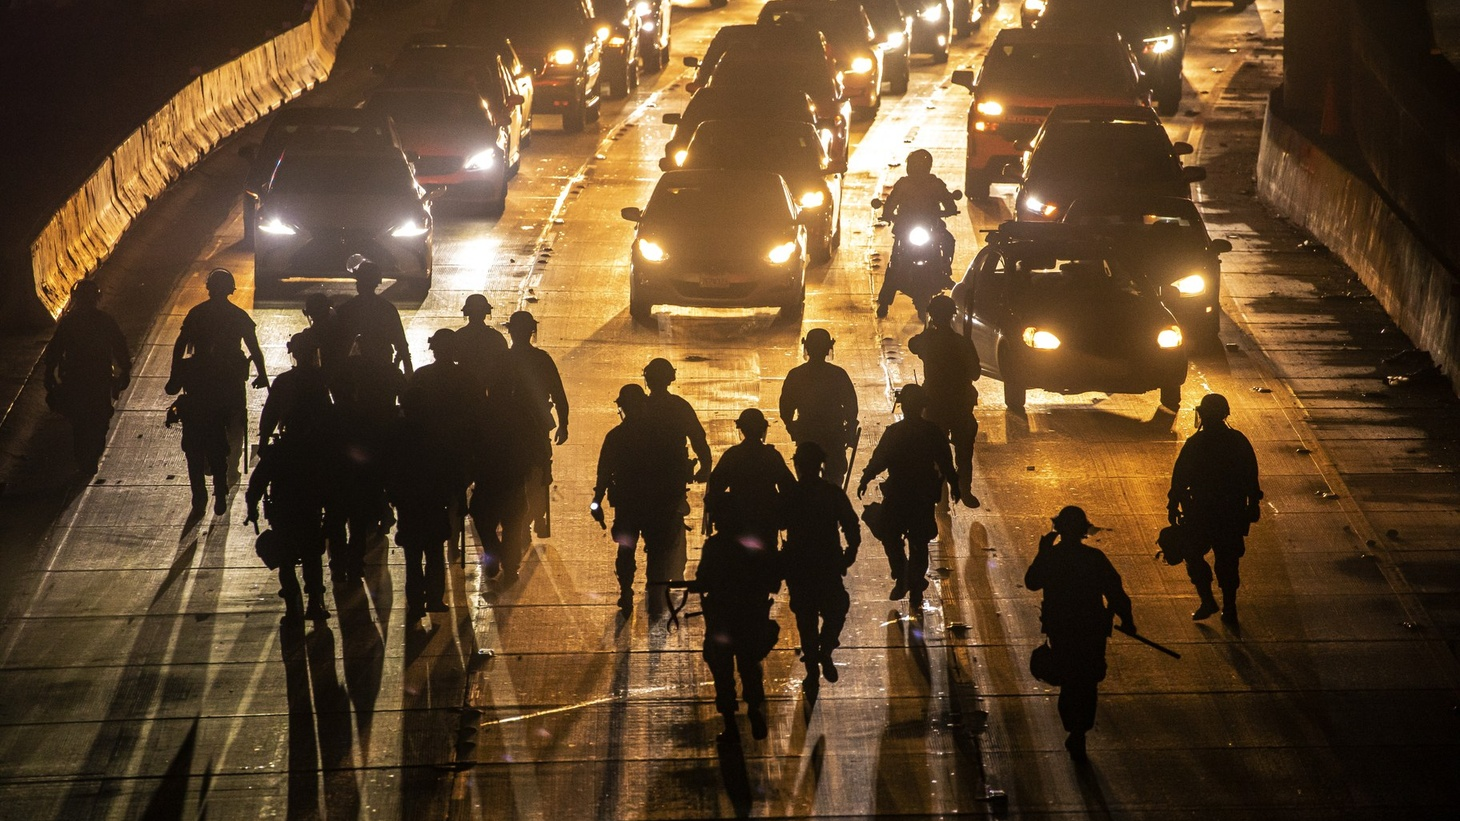 On May 29, demonstrators in downtown Los Angeles took over the 110 freeway and damaged several businesses in the area.